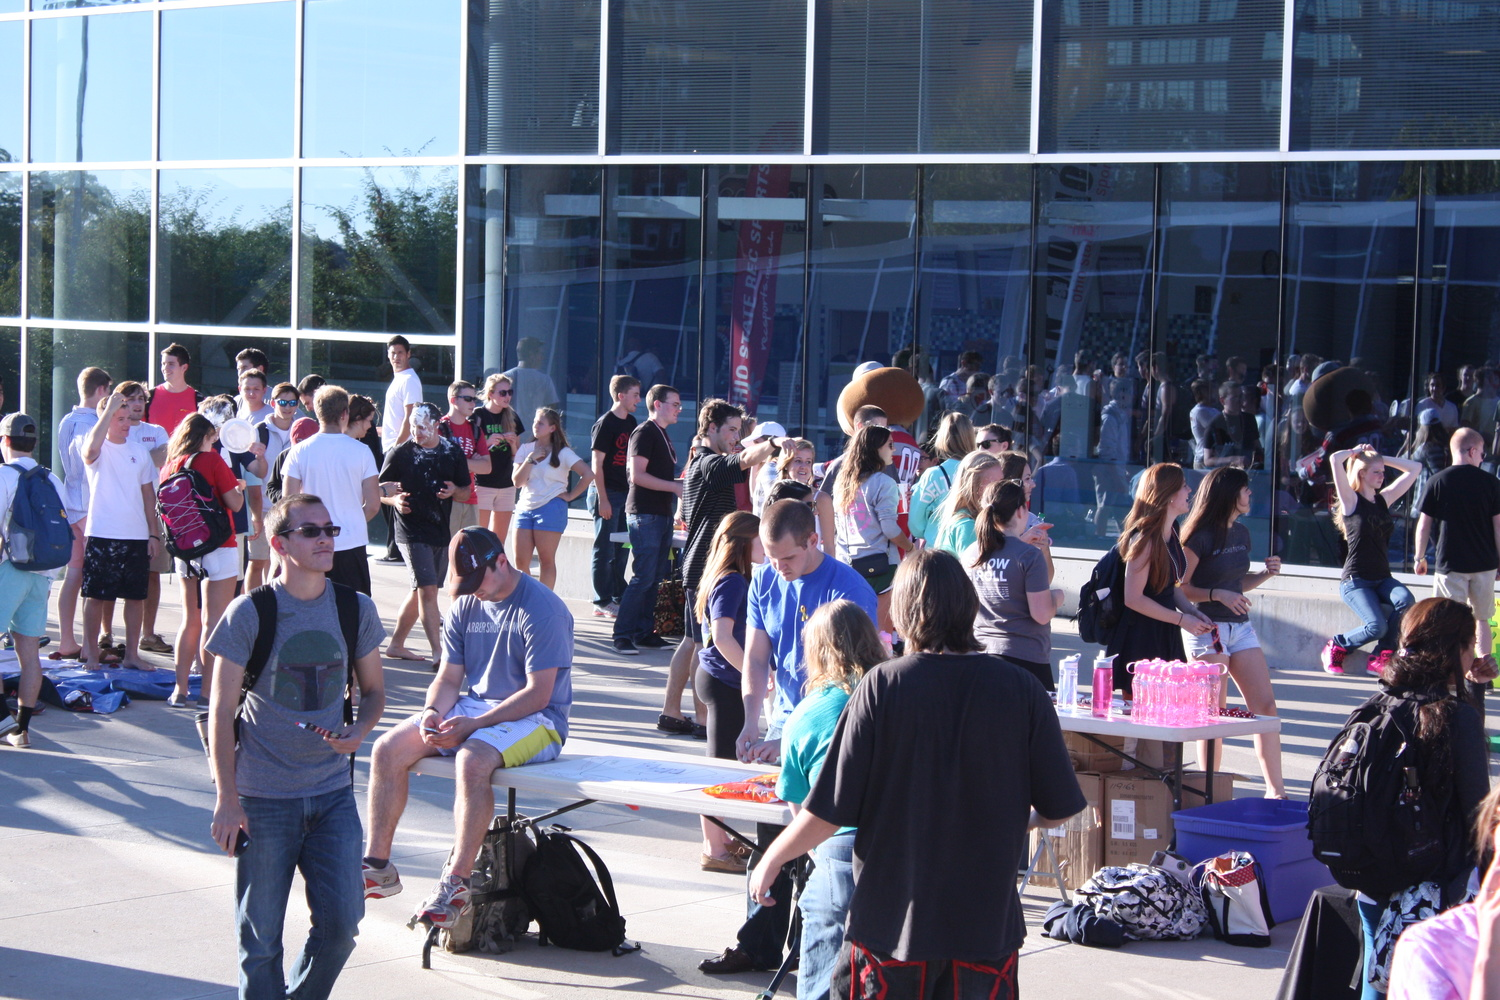 Students gather outside the RPAC Sept. 26 for BuckeyeThon FEST! The event was meant to raise money for BuckeyeThon. Credit: Hannah Chenetski / Lantern photographer